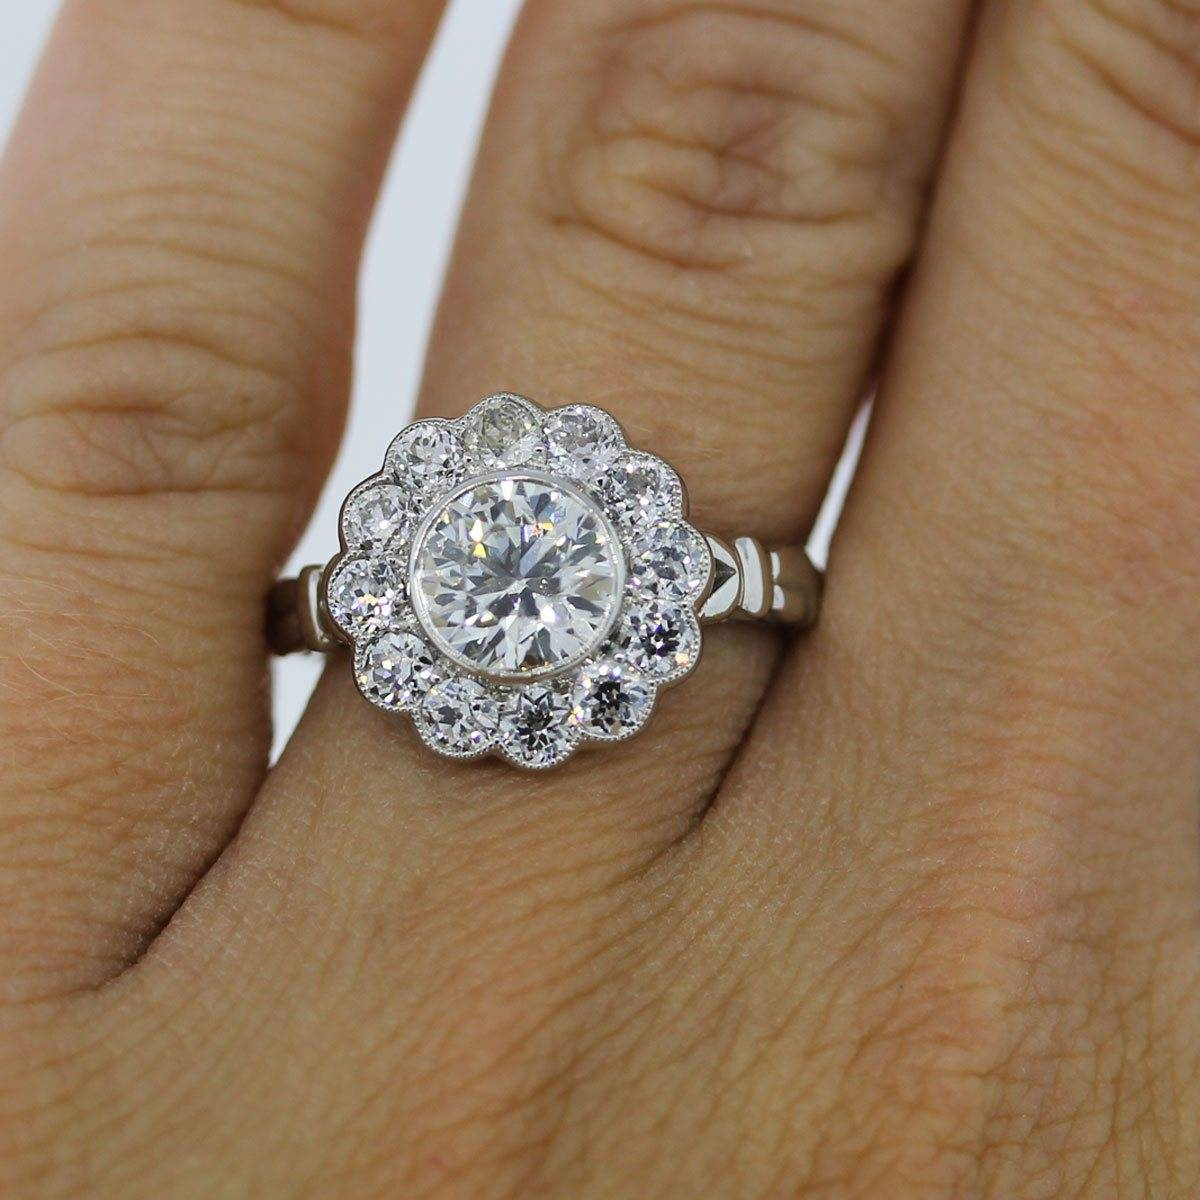 rings engagement product halo floral rose category designs jewelry wedding ring